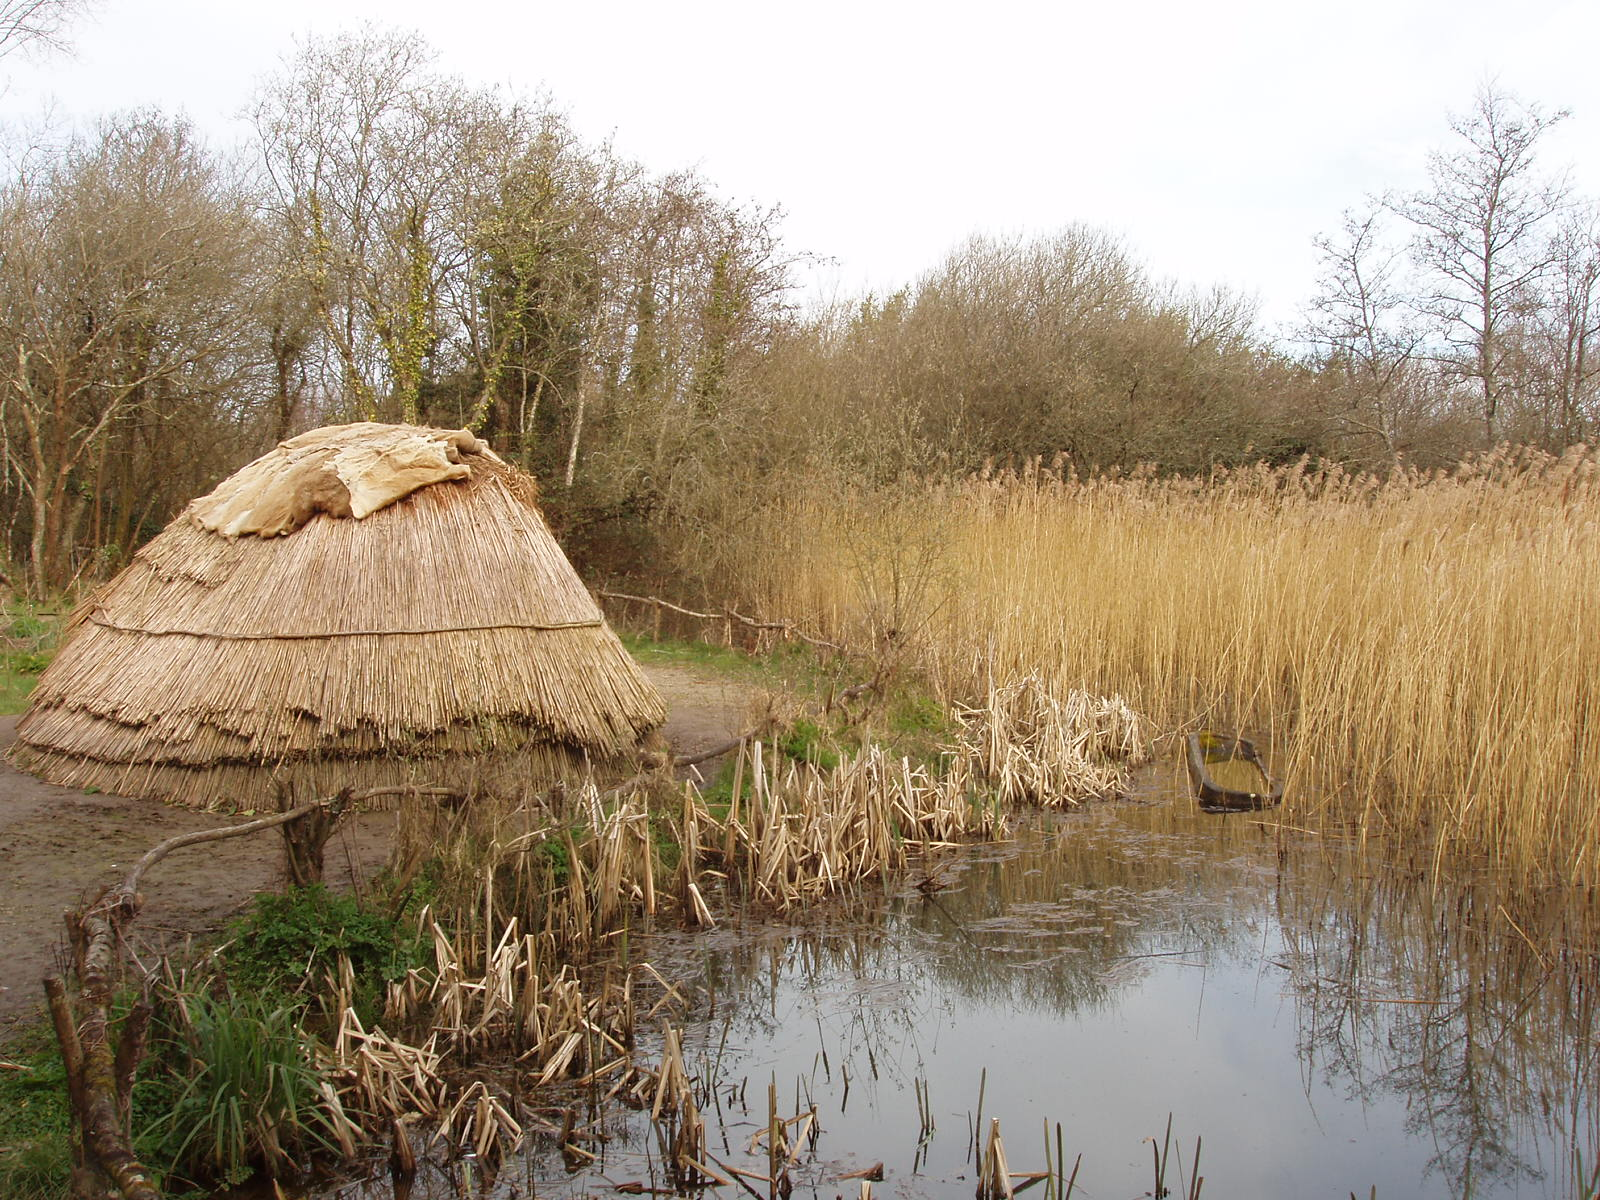 Hunter gatherer's camp at Irish National Heritage Park - geograph.org.uk - 1252699